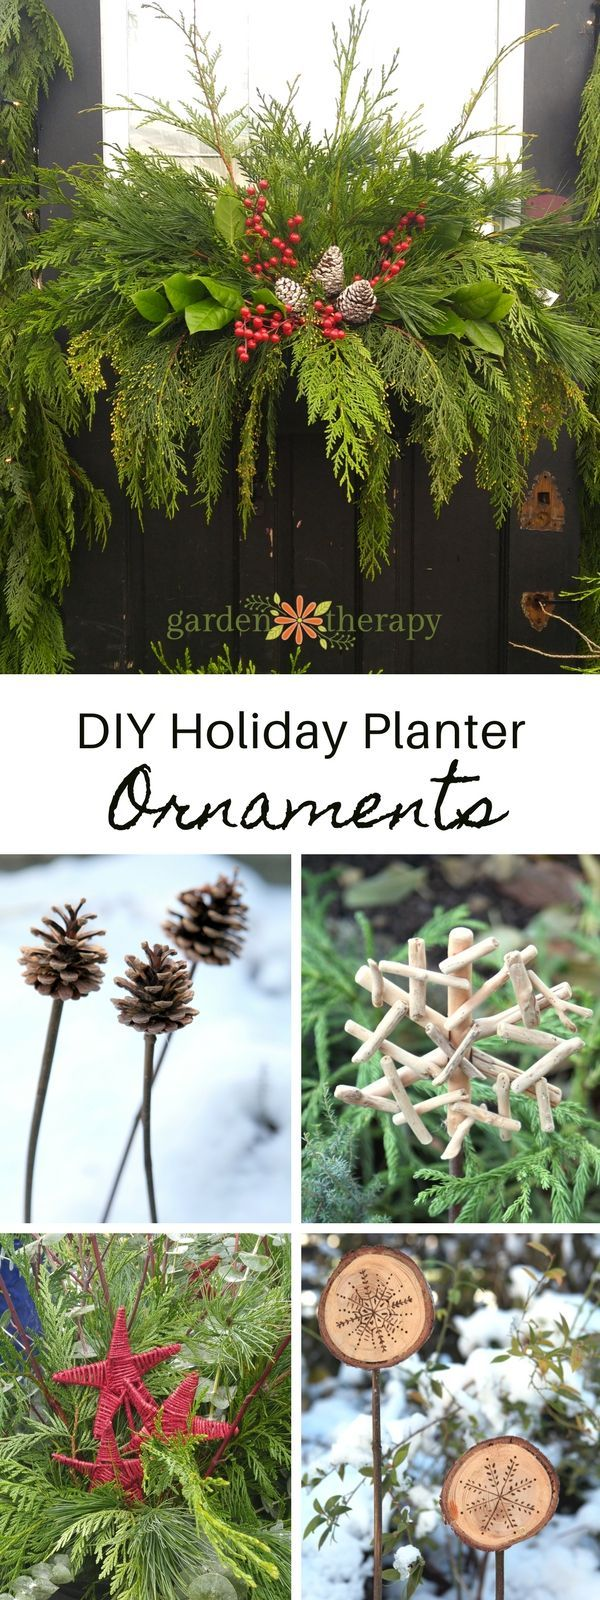 Easy and frugal DIY planter ornaments #christmasornaments #outdoordecor #holidayplanter #Christmasplanter #DIYChristmas